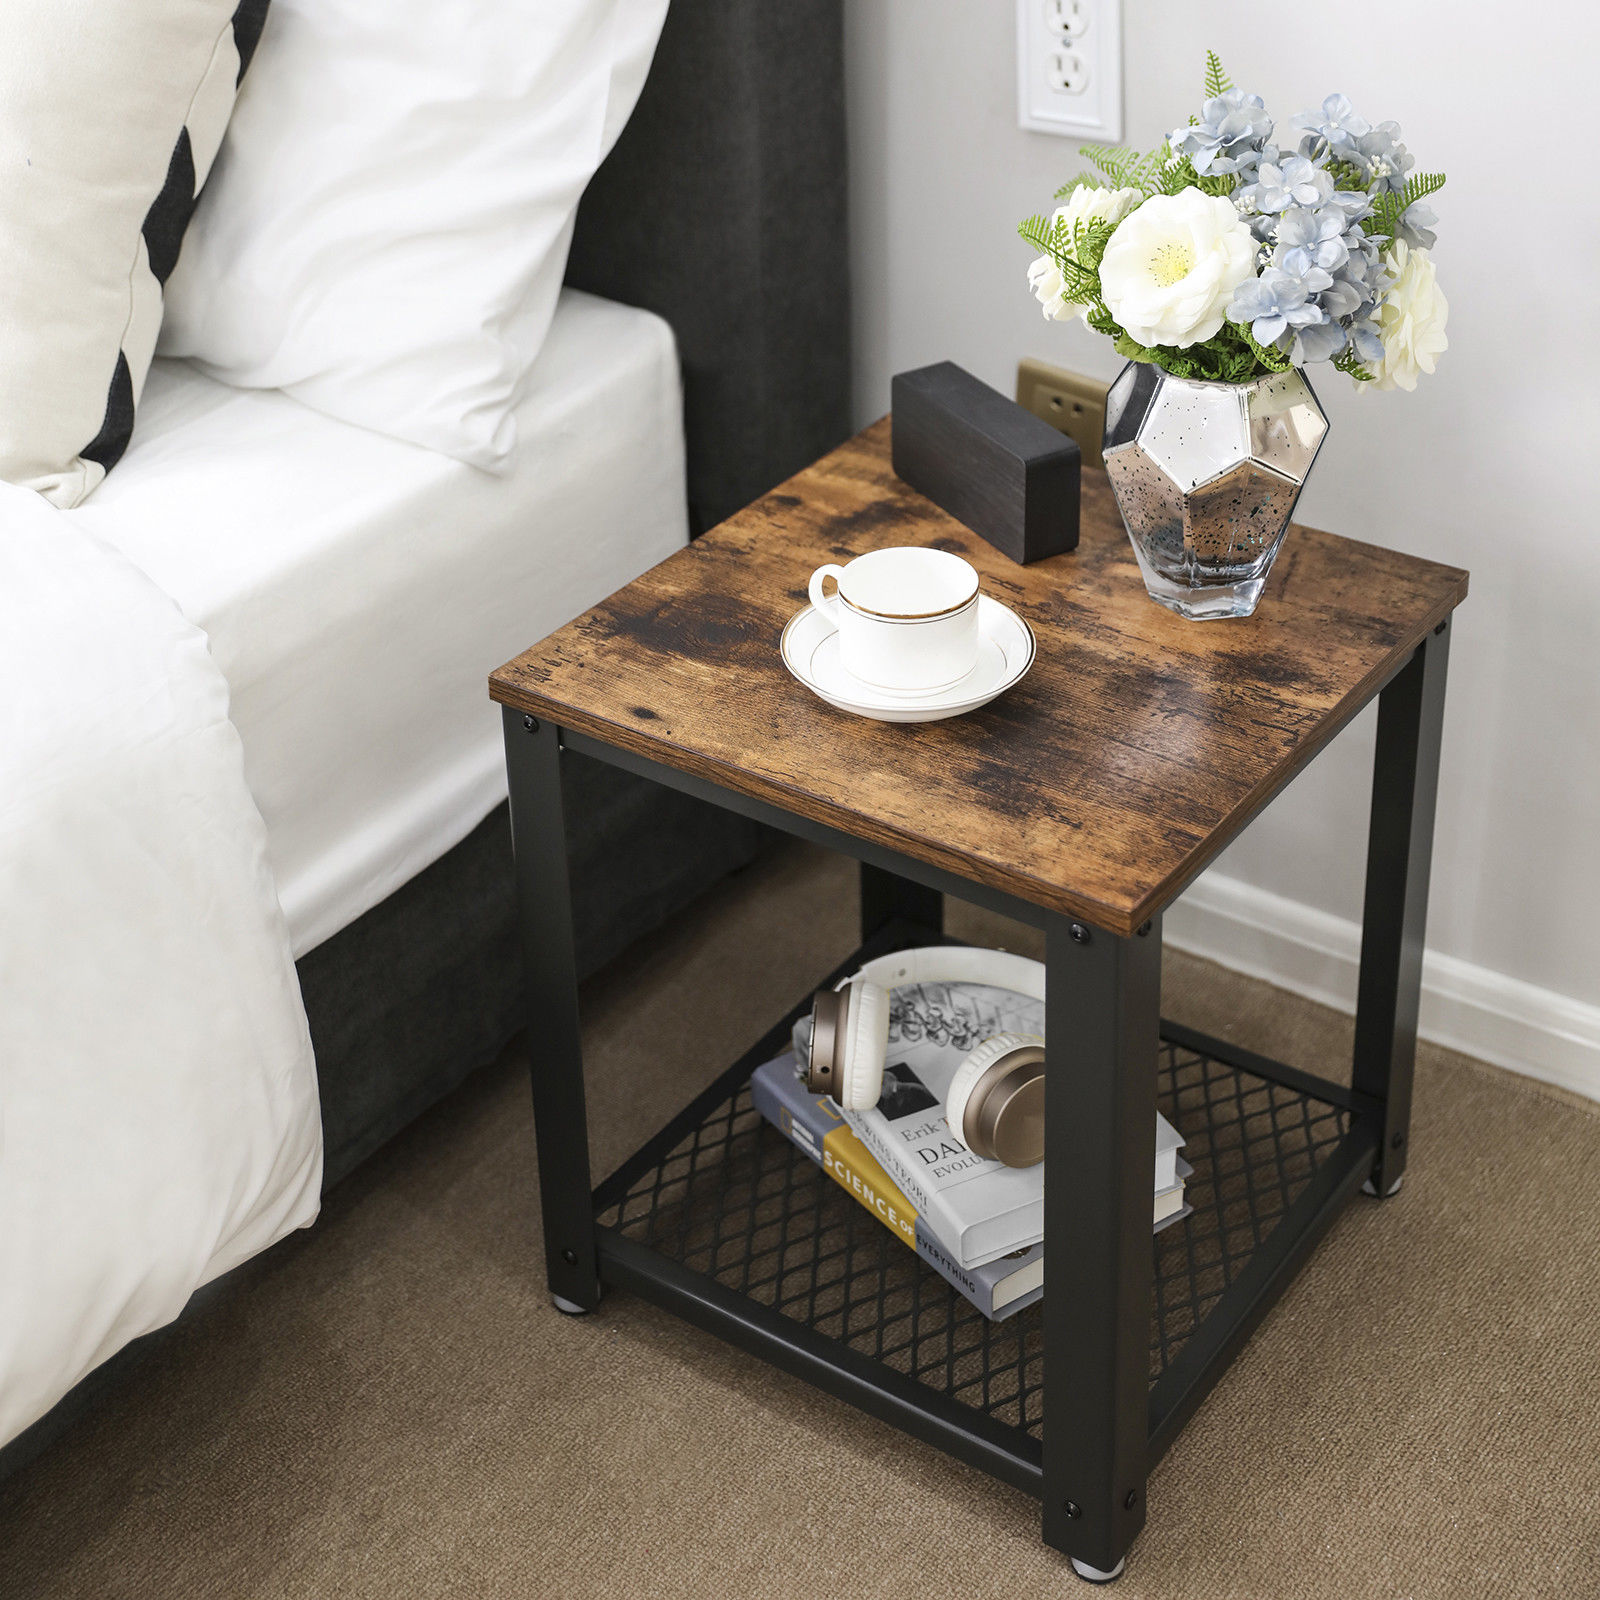 images room tables table side livings best on chair living pinterest black